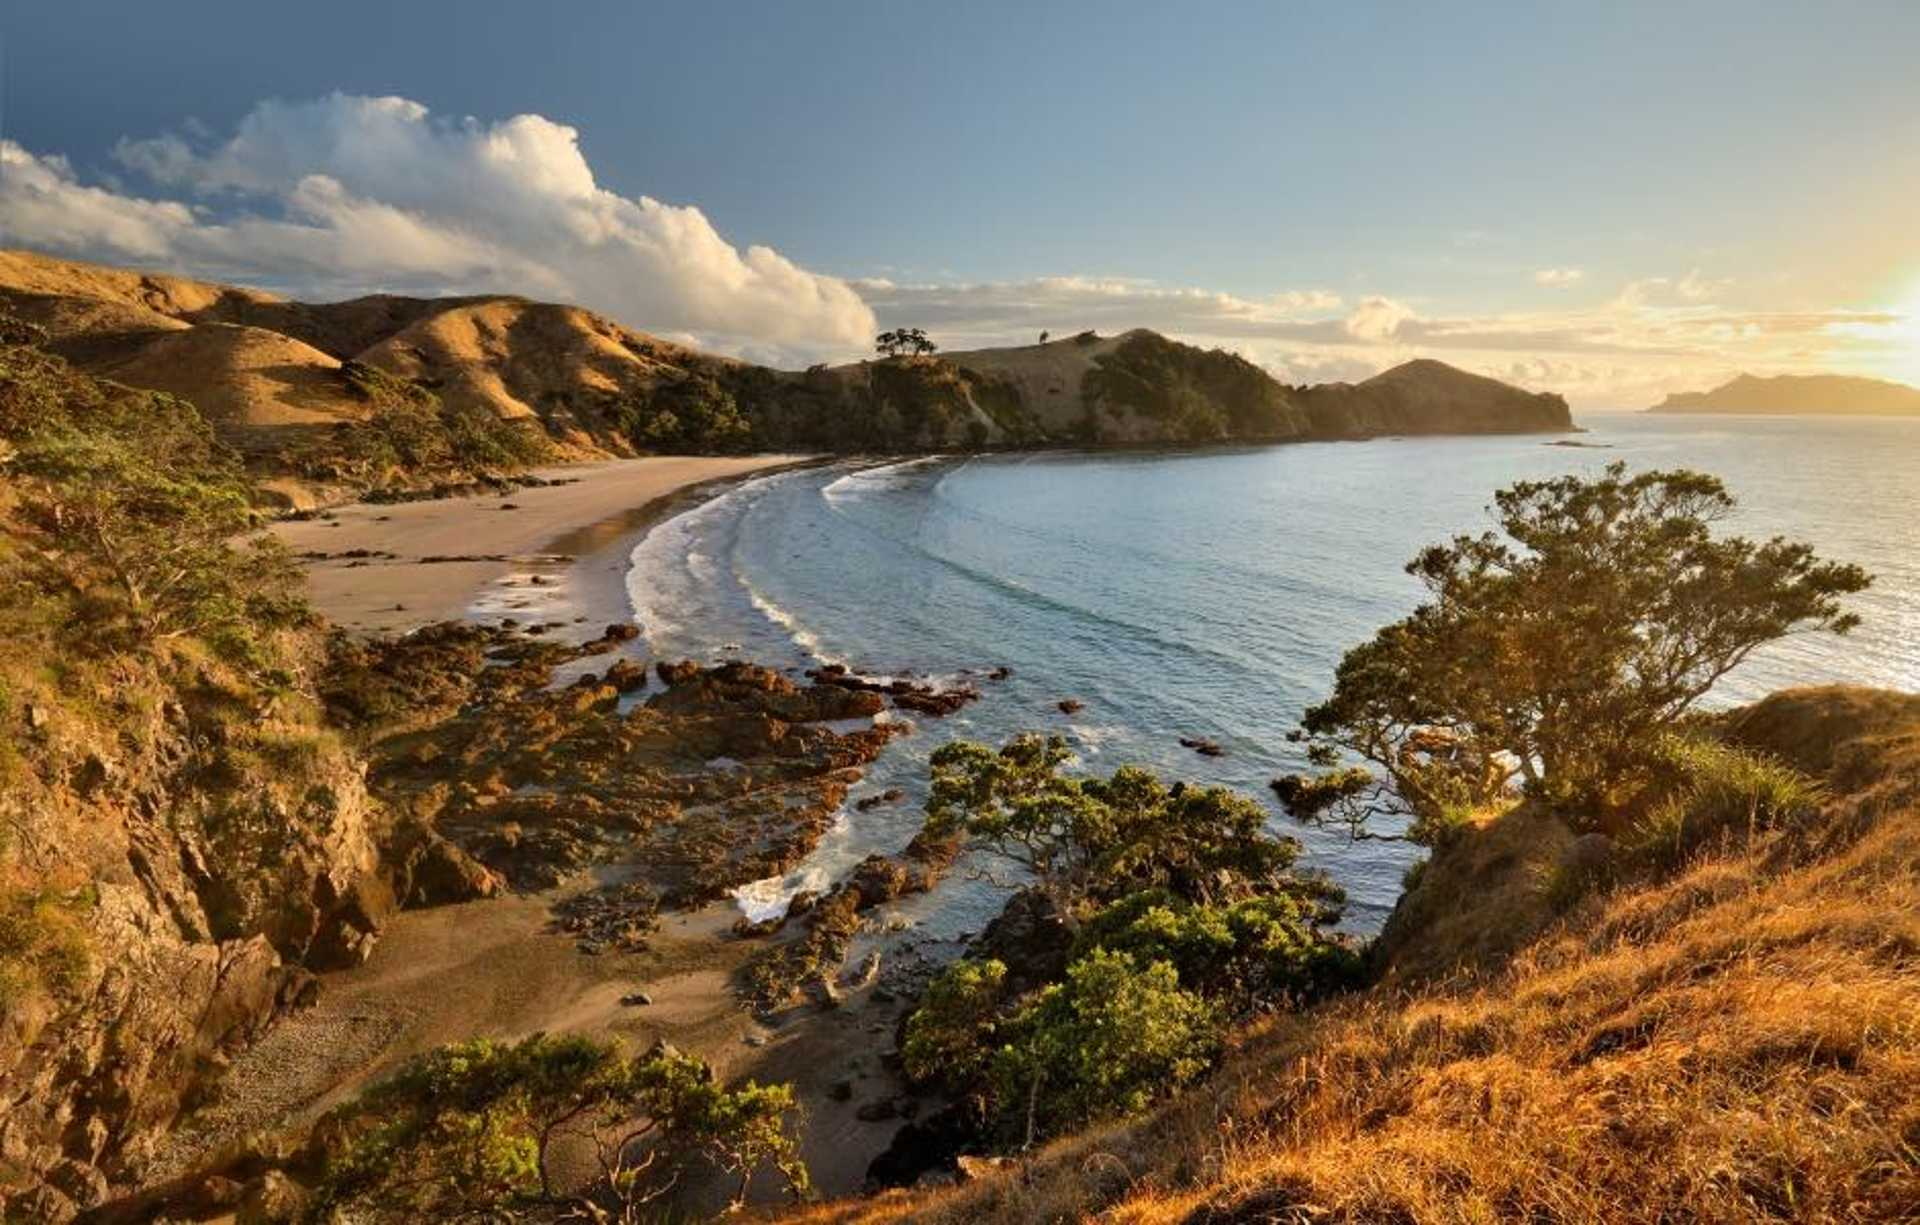 Great Barrier Island bathed in the lights of the setting sun.